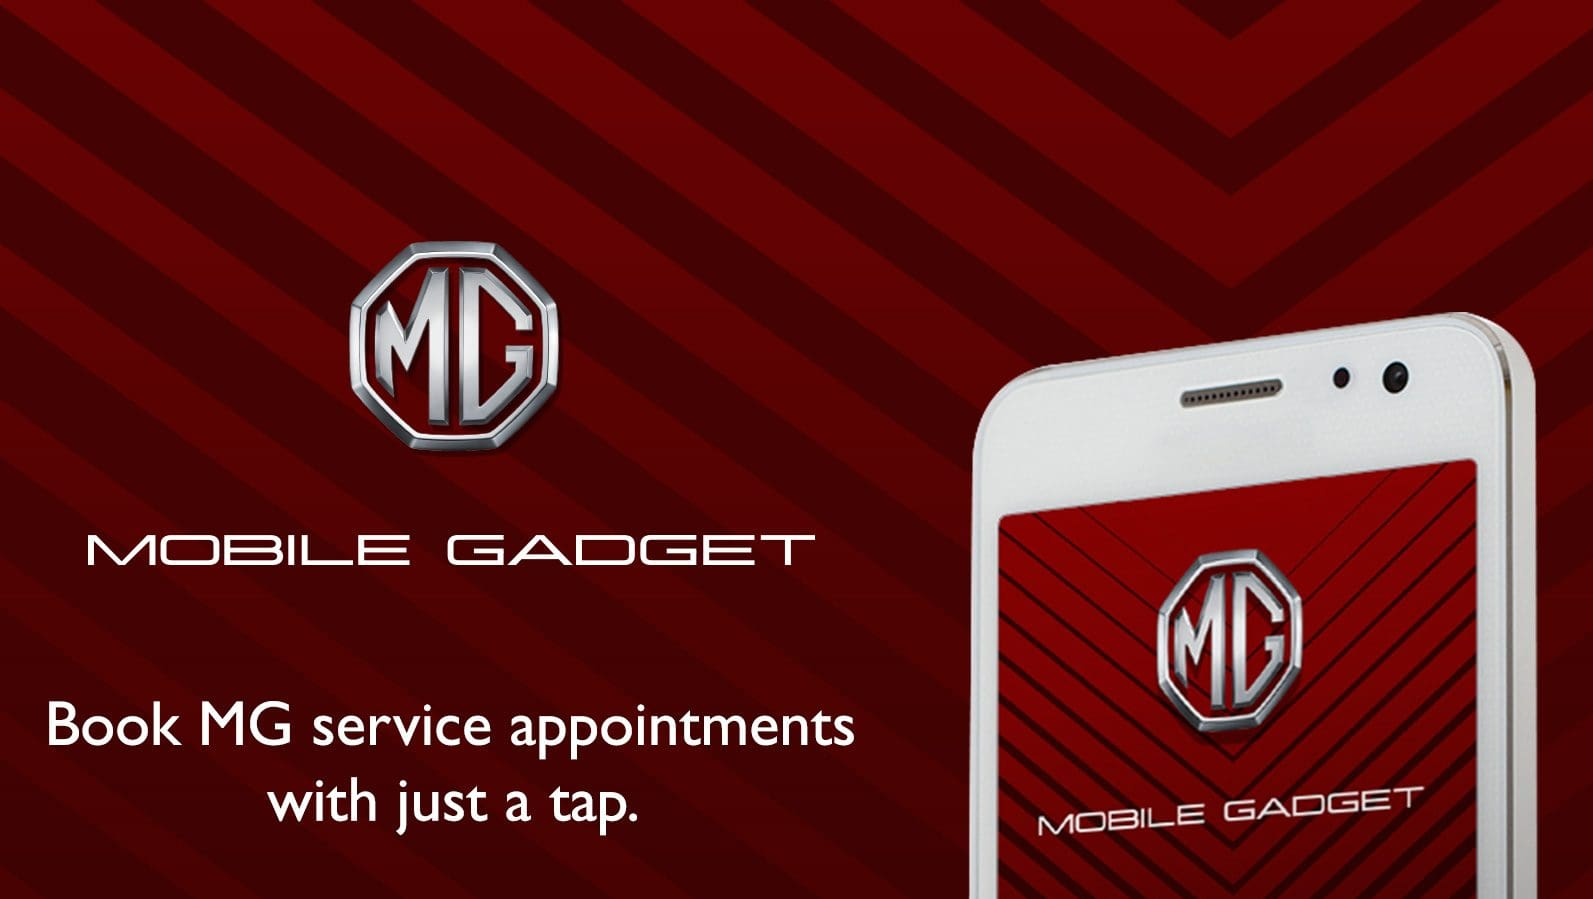 MG PH Introduces 'Mobile Gadget' Mobile App to Complement its Host of Innovate Aftersales Services